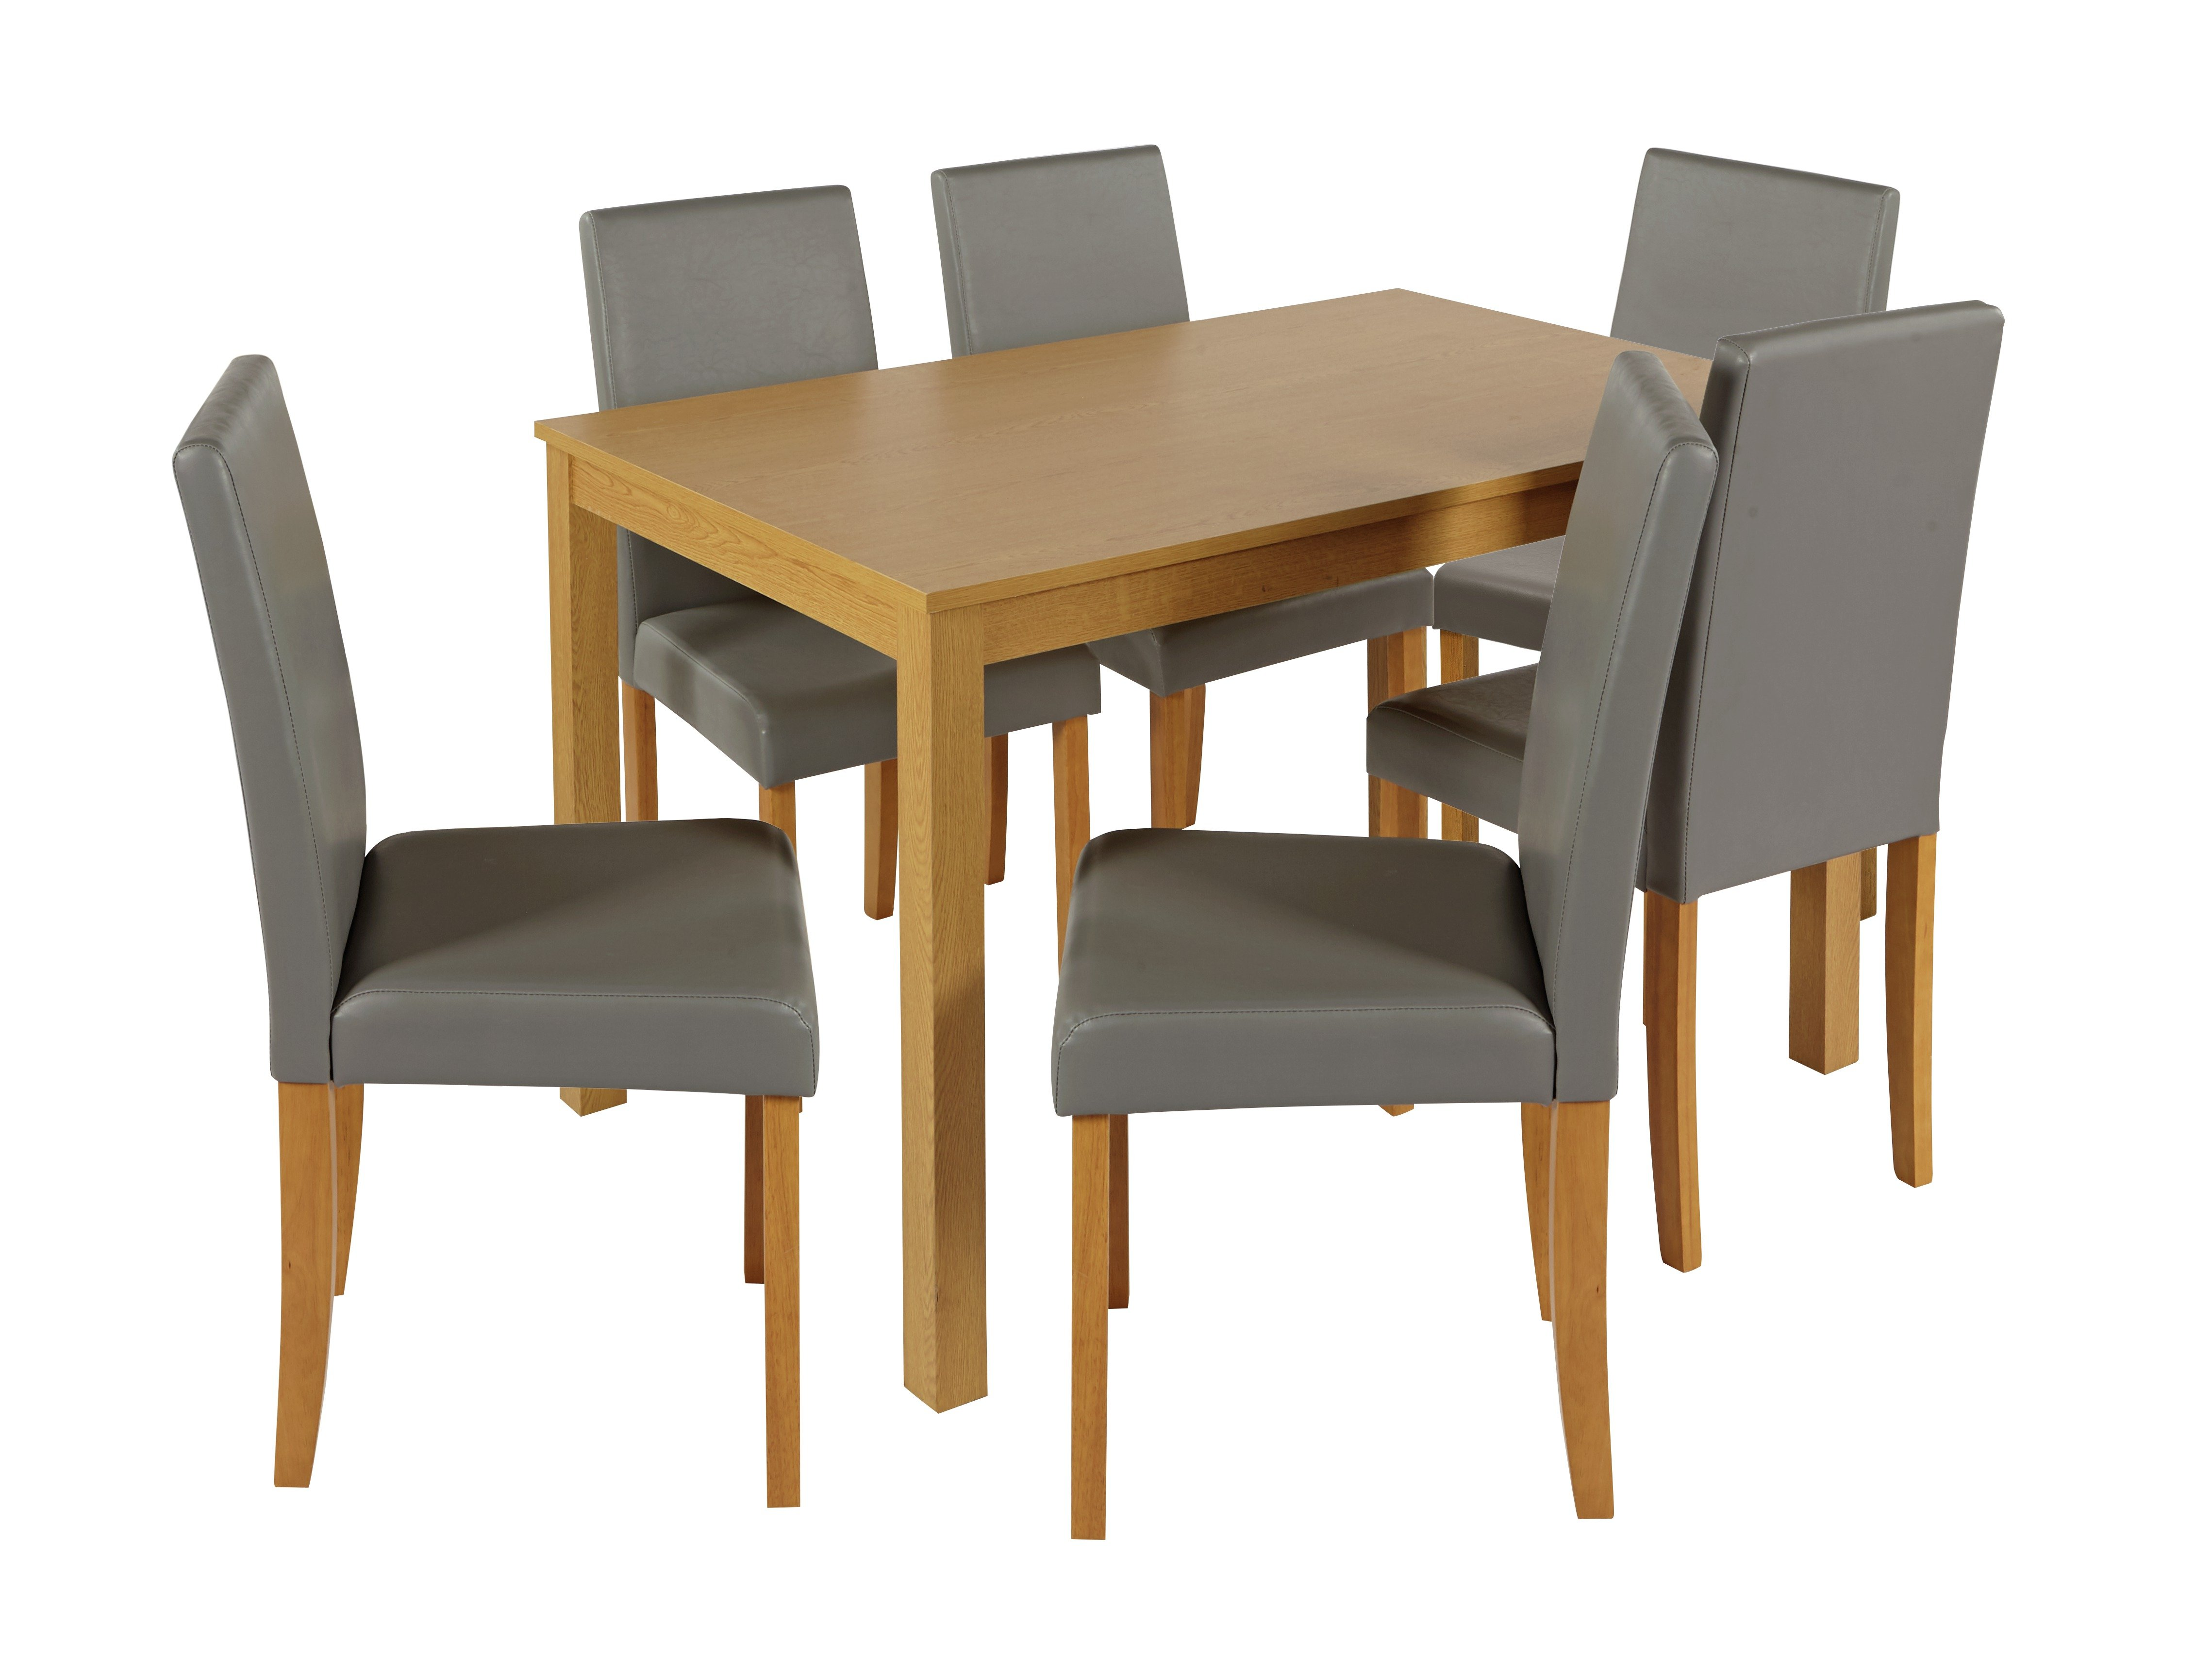 Argos Home New Elmdon Oak Eff Dining Table & 6 Chairs review